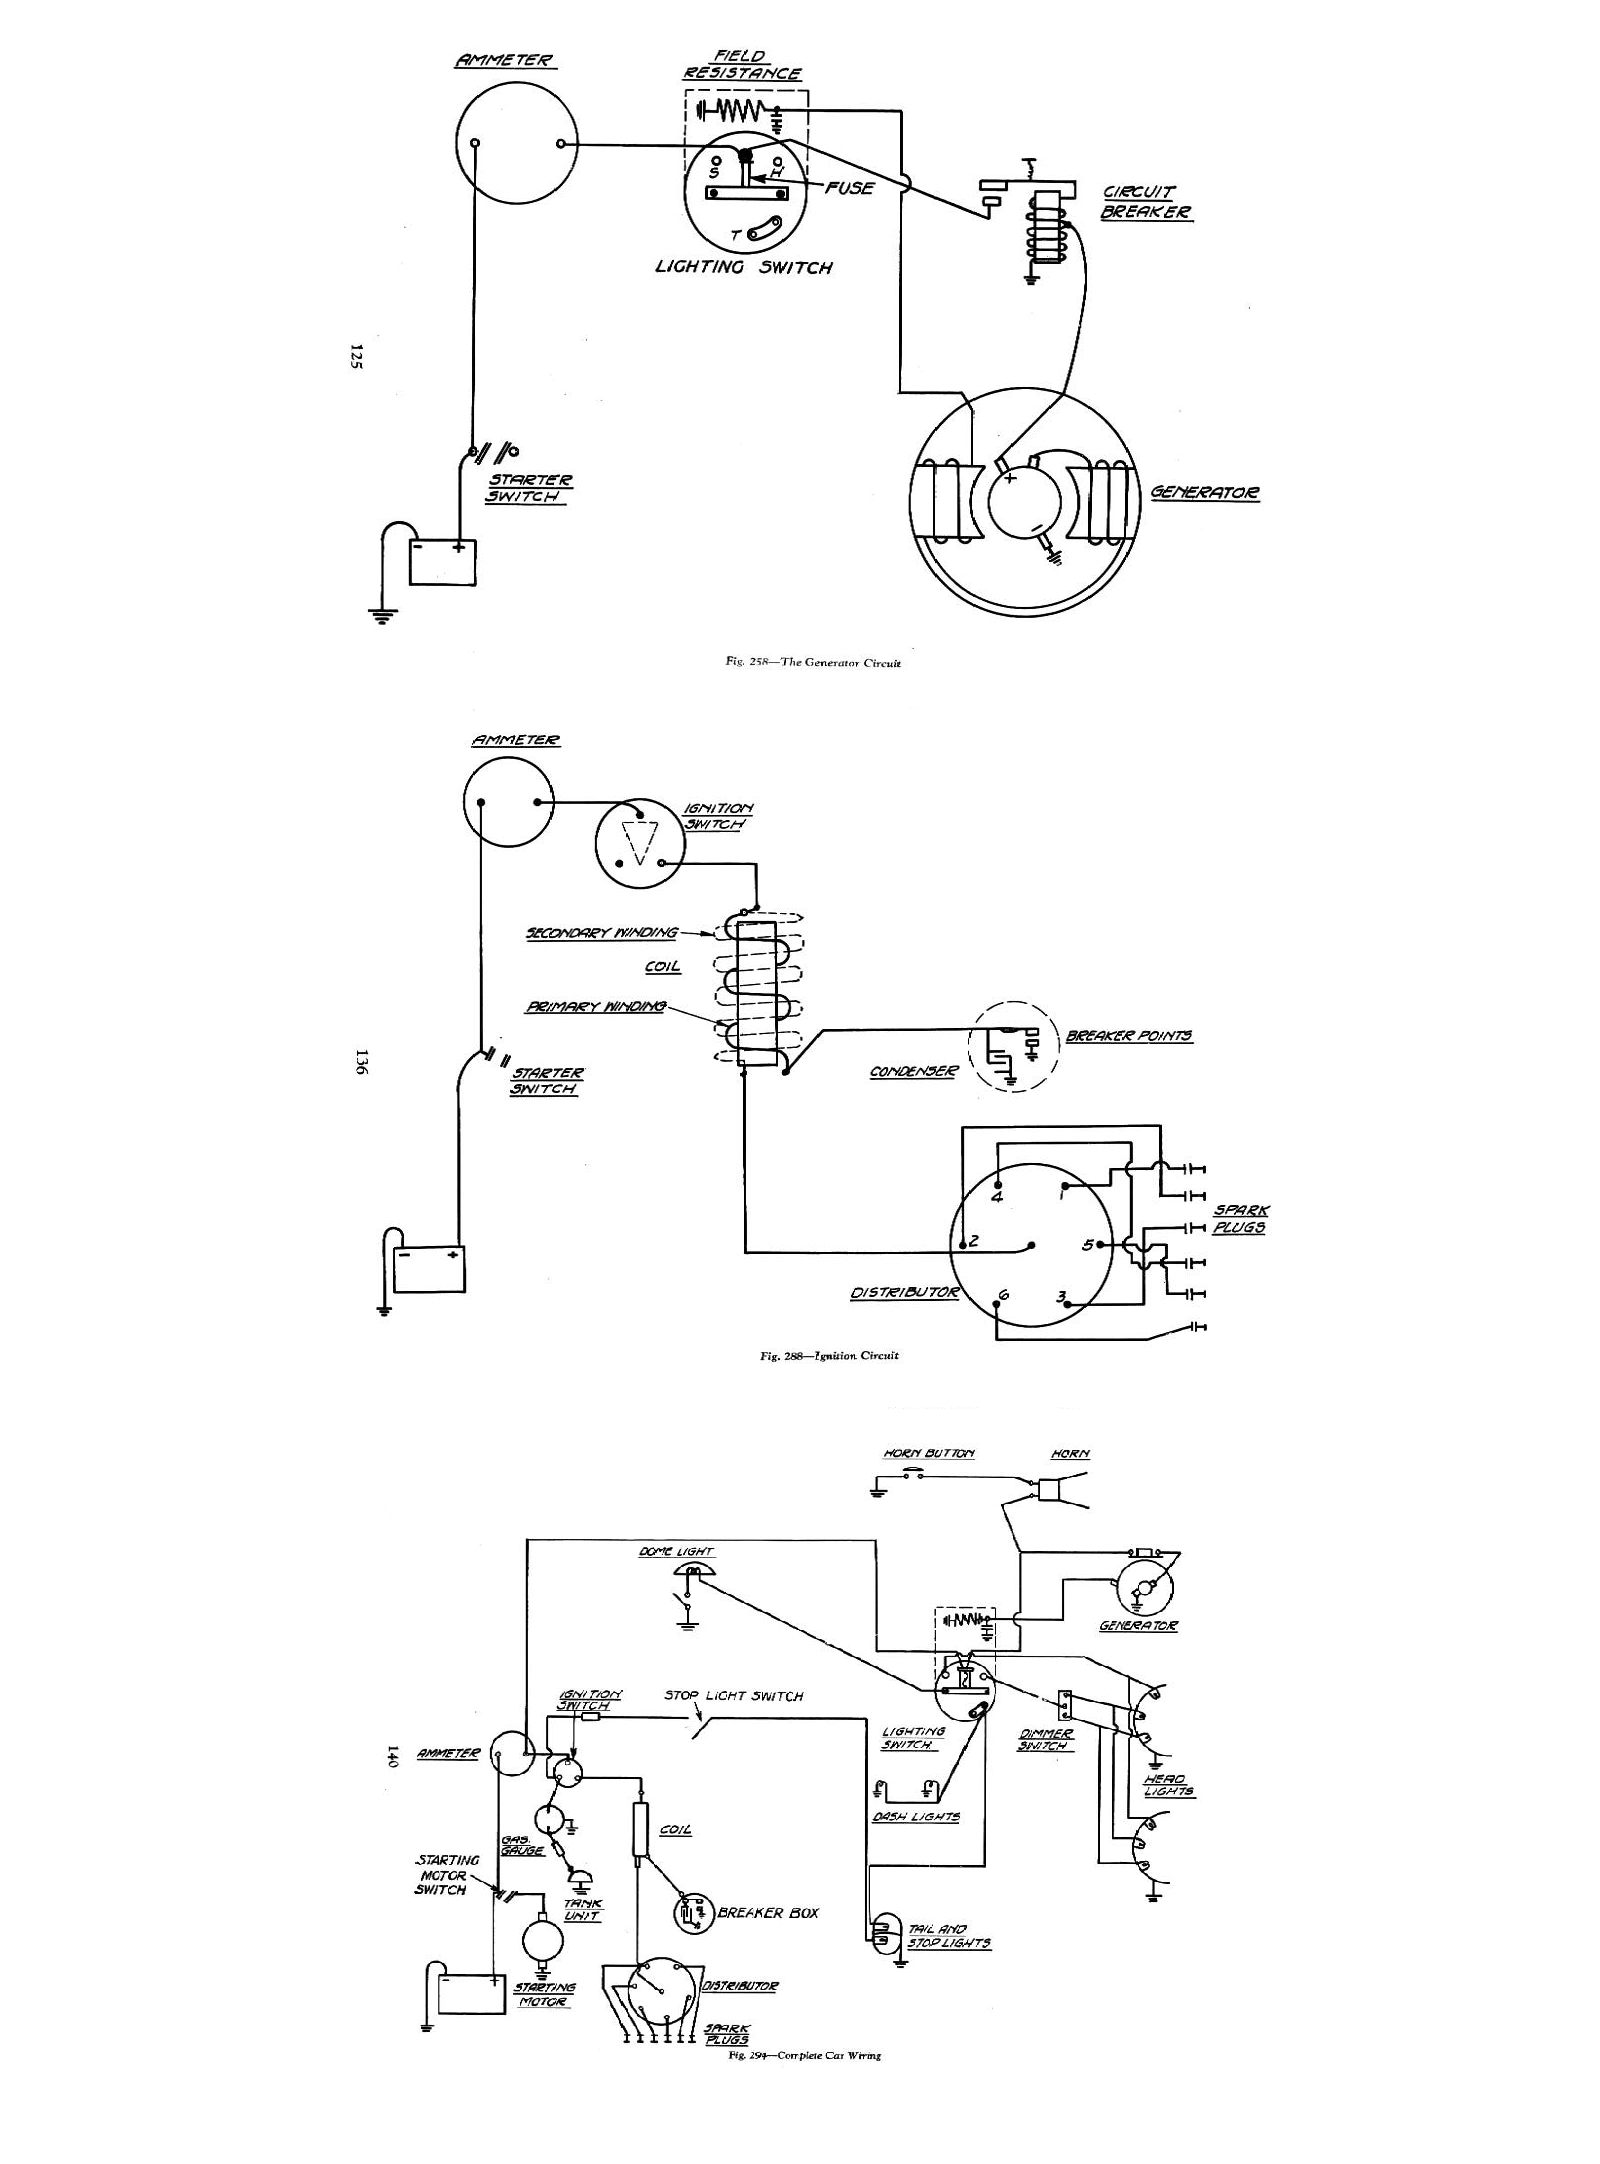 chevy wiring diagrams 1934 1934 wiring diagrams · 1934 general wiring · 1934 generator circuit